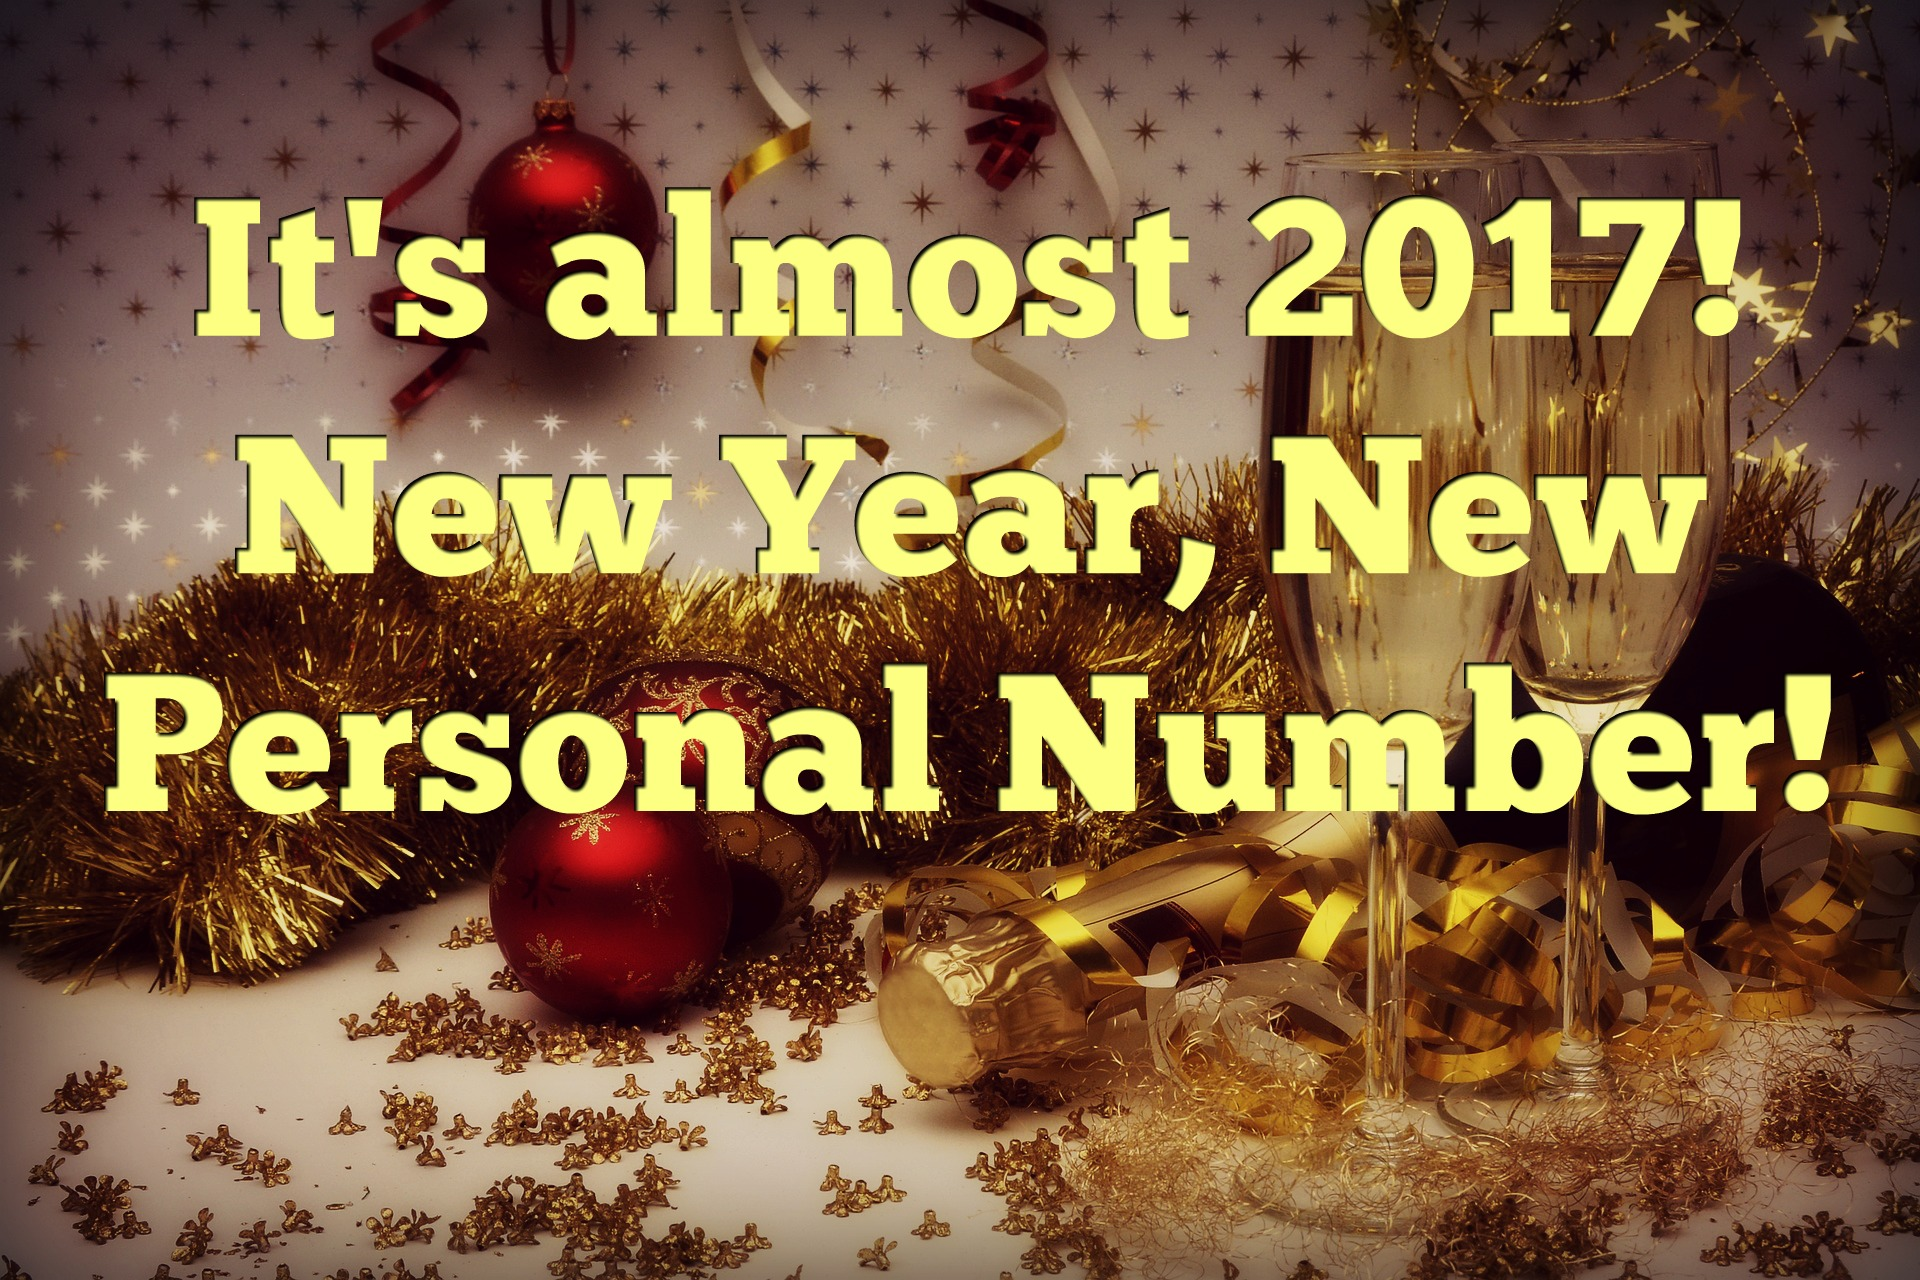 2017 – New Year, New Personal Number!